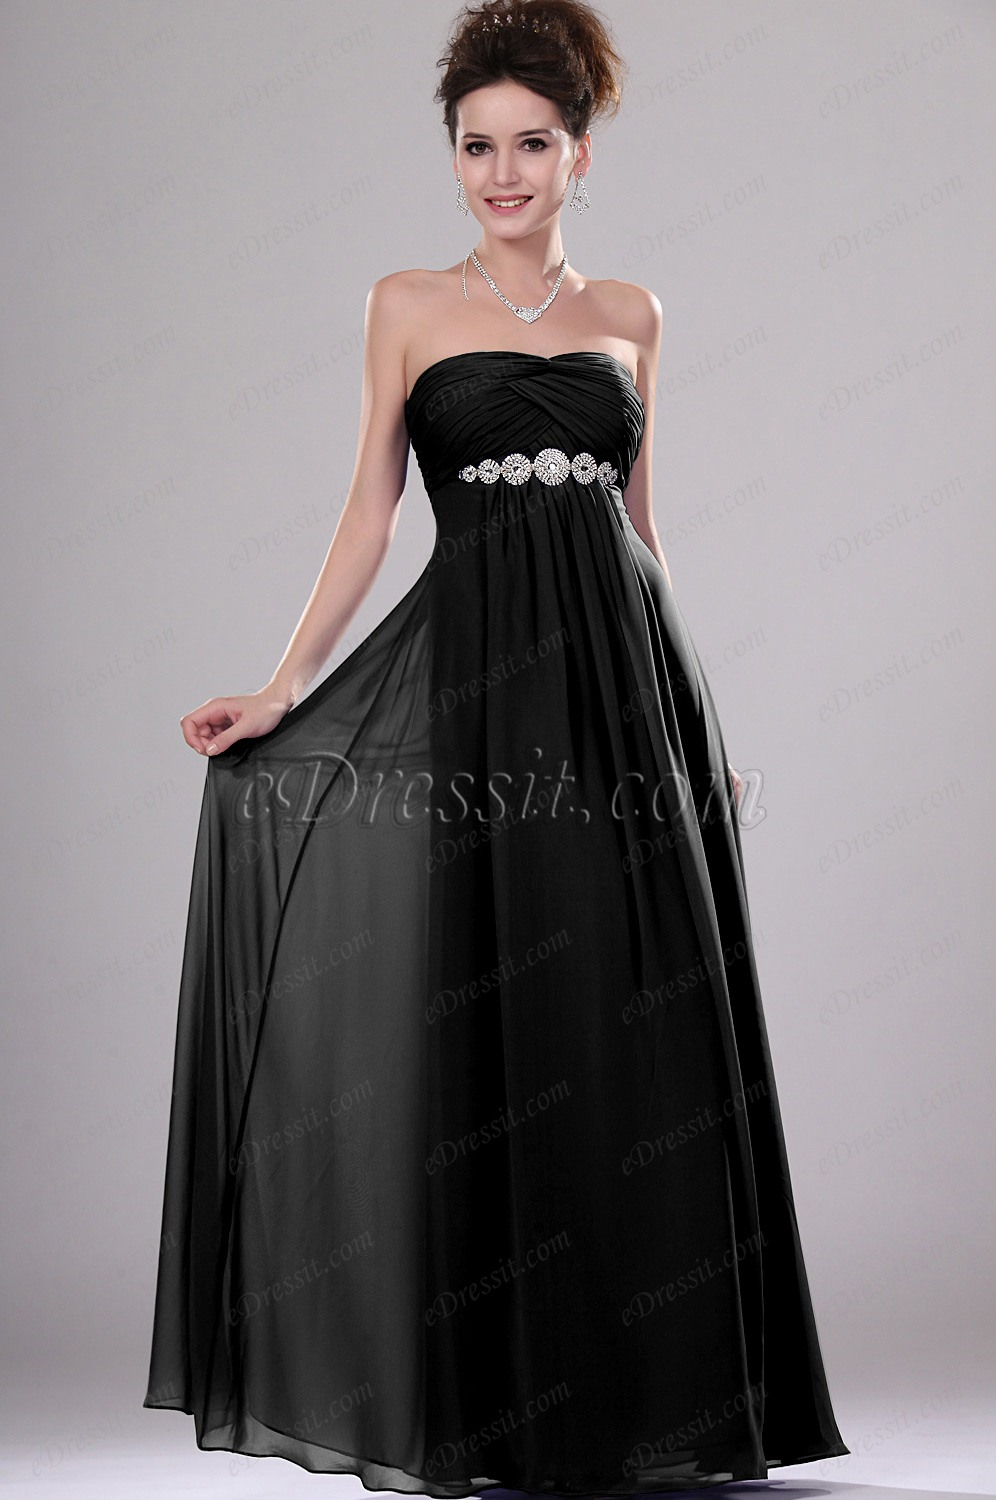 Clearance Sale ! eDressit Shimmering Beaded Strapless Evening Dress Black (00111605B)